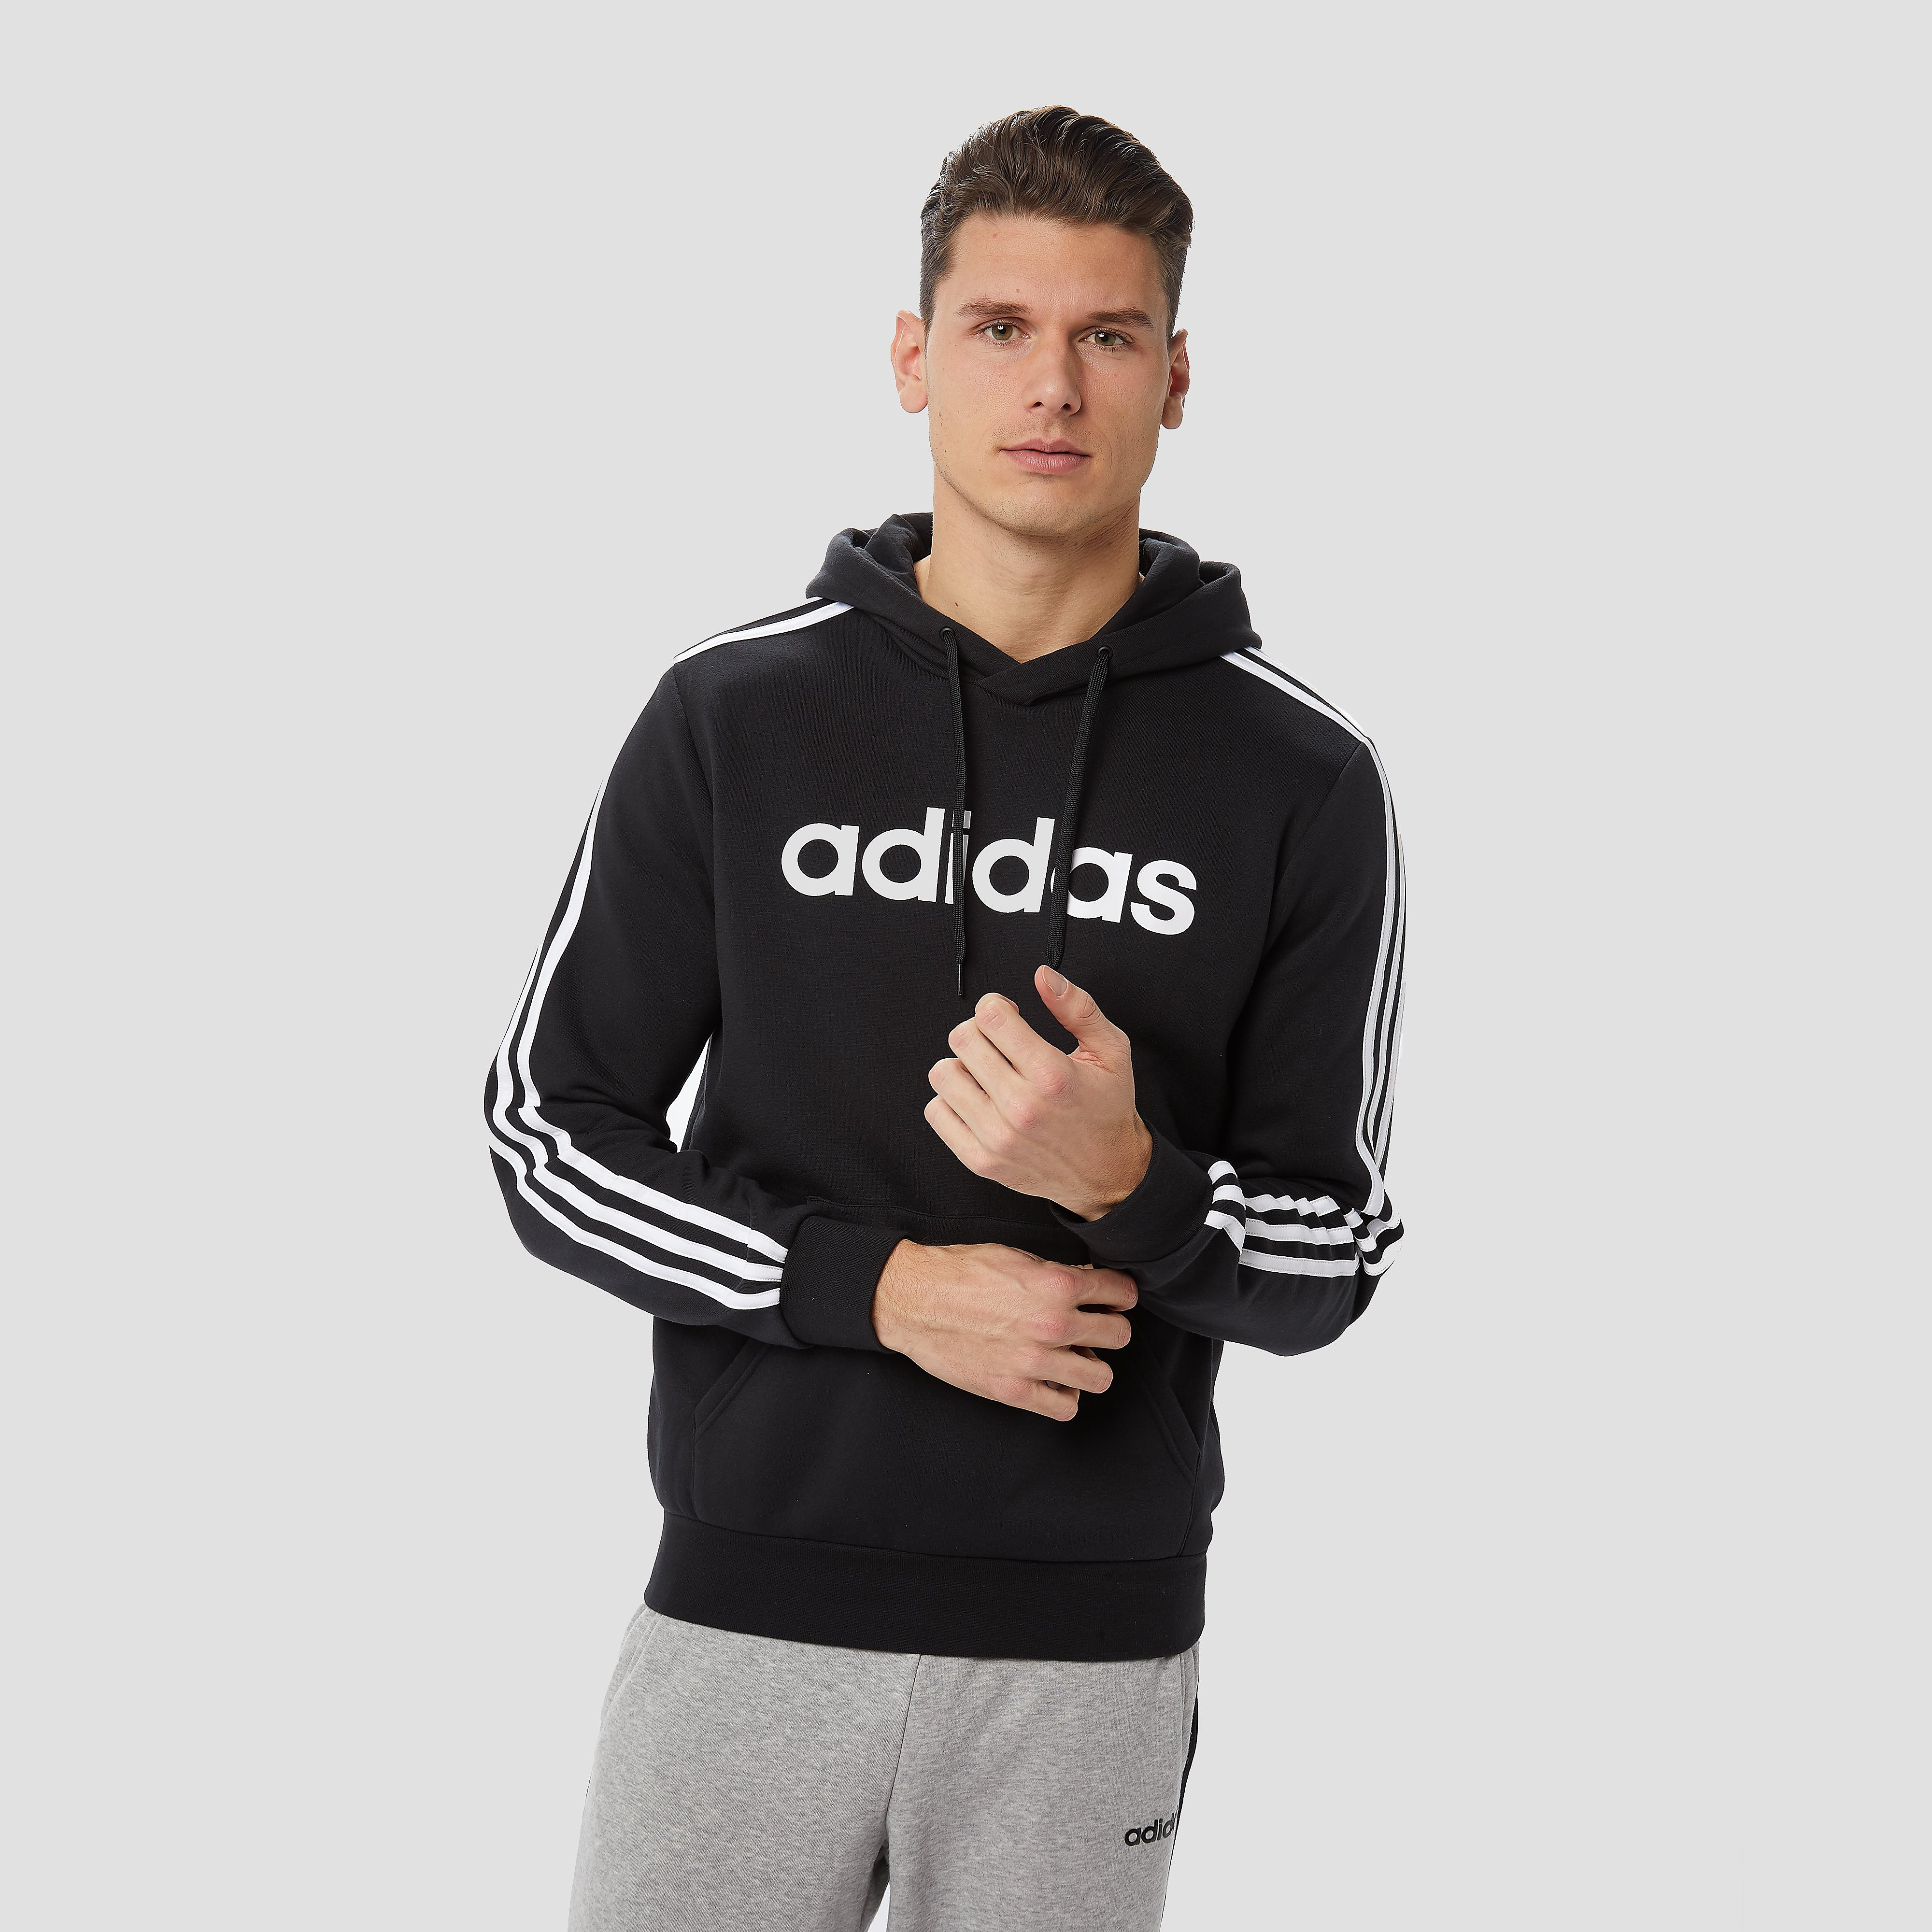 adidas Essentials 3-stripes fleece trui zwart heren Heren